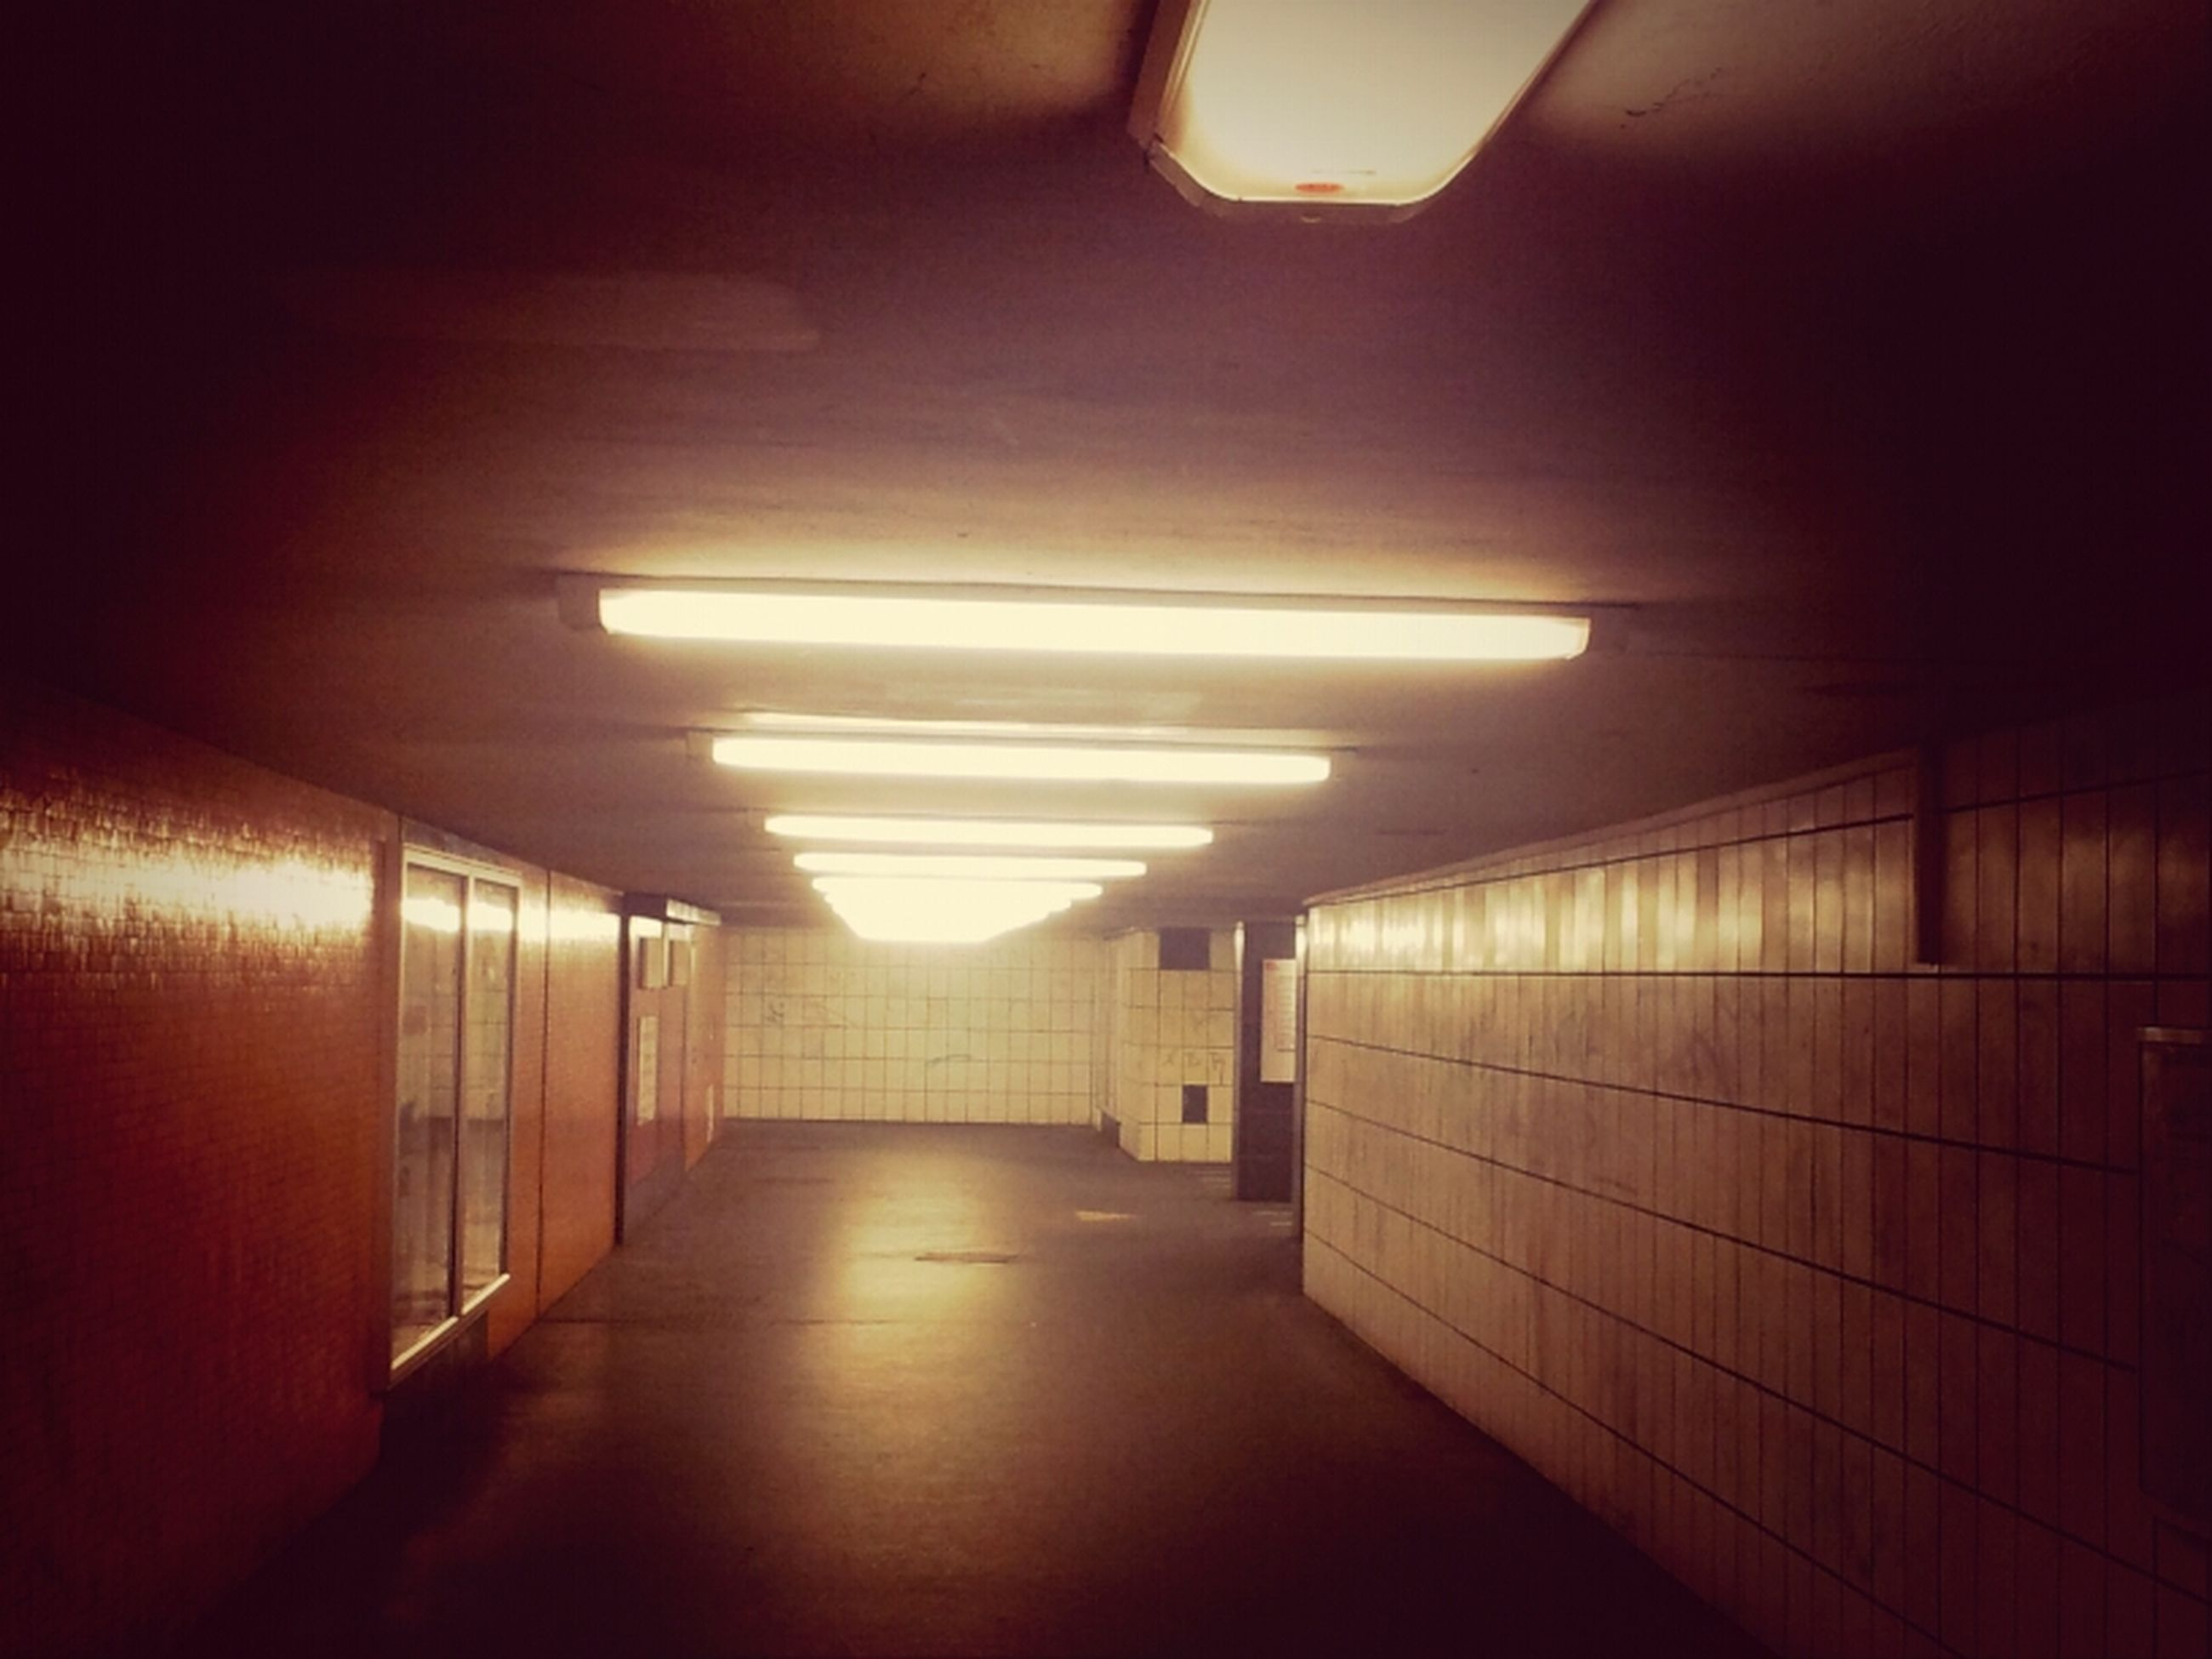 indoors, illuminated, the way forward, corridor, empty, ceiling, lighting equipment, architecture, built structure, absence, diminishing perspective, flooring, narrow, wall - building feature, long, interior, tunnel, subway, light - natural phenomenon, no people